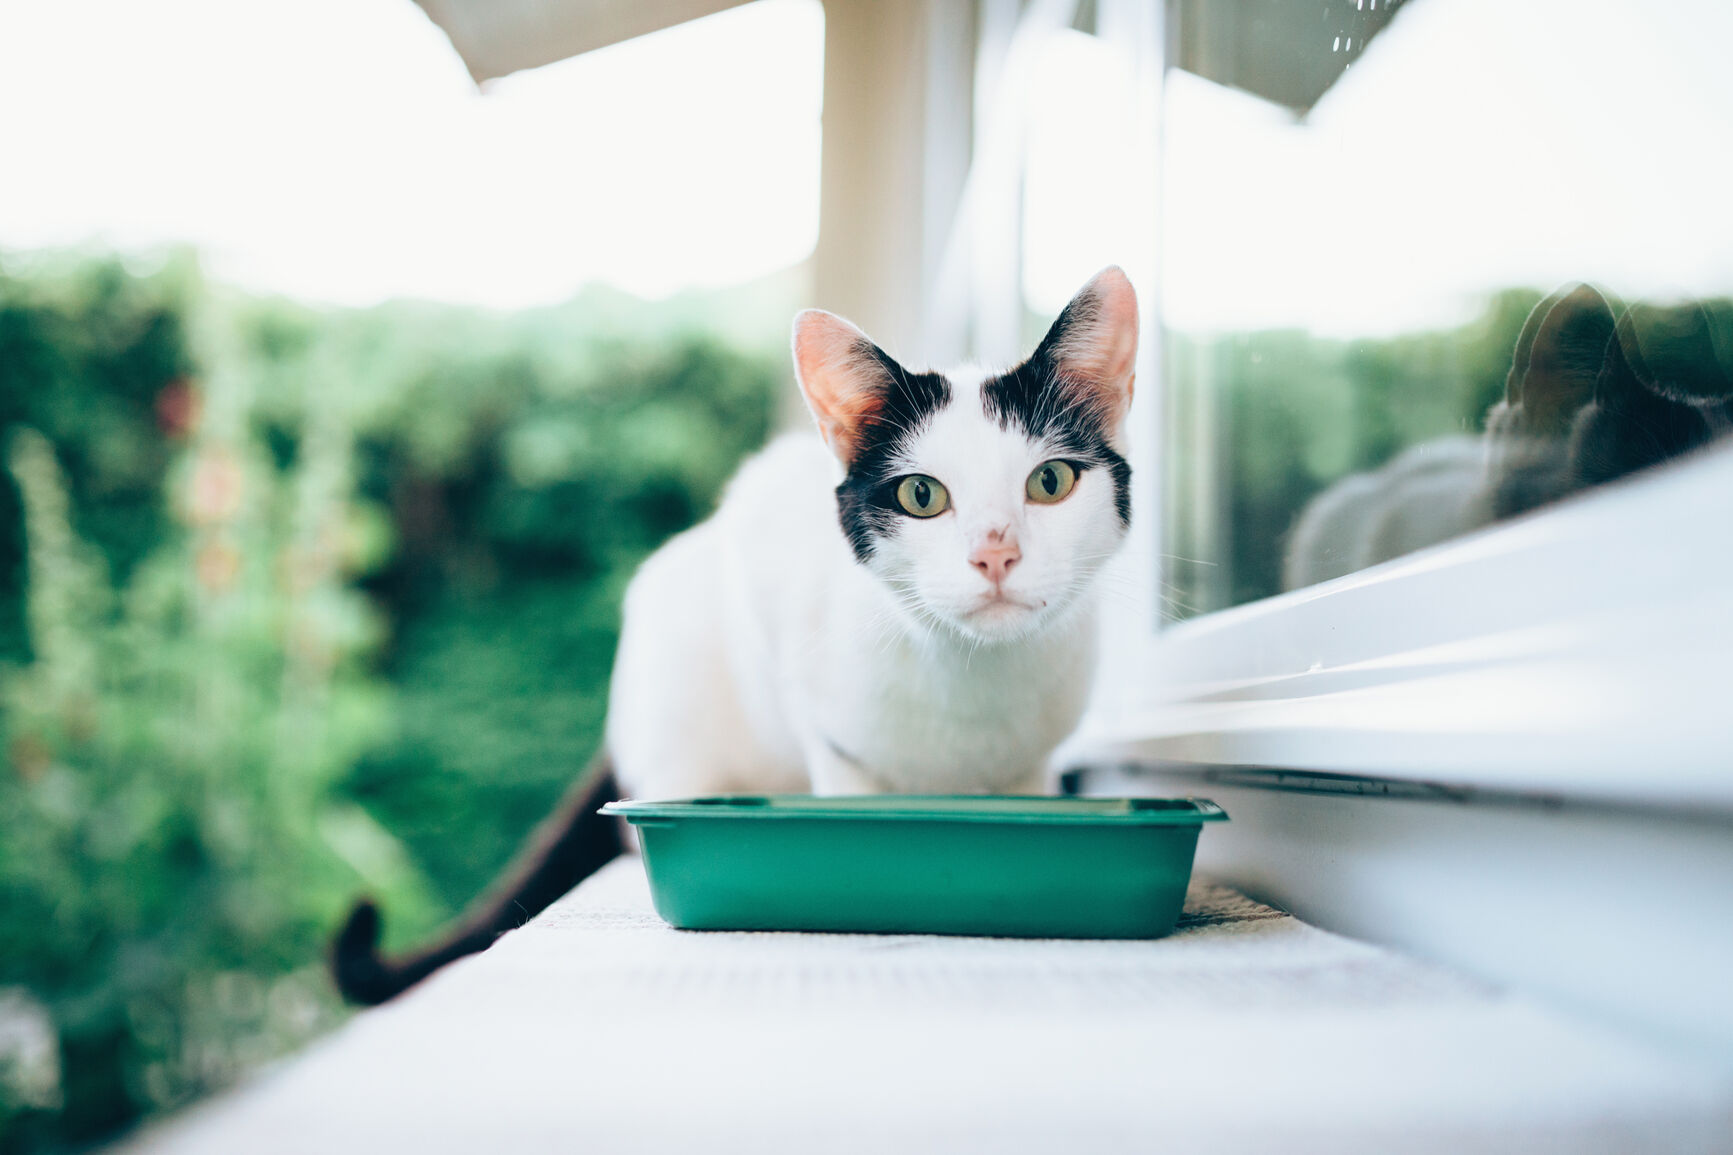 cat and food bowl outside on window ledge